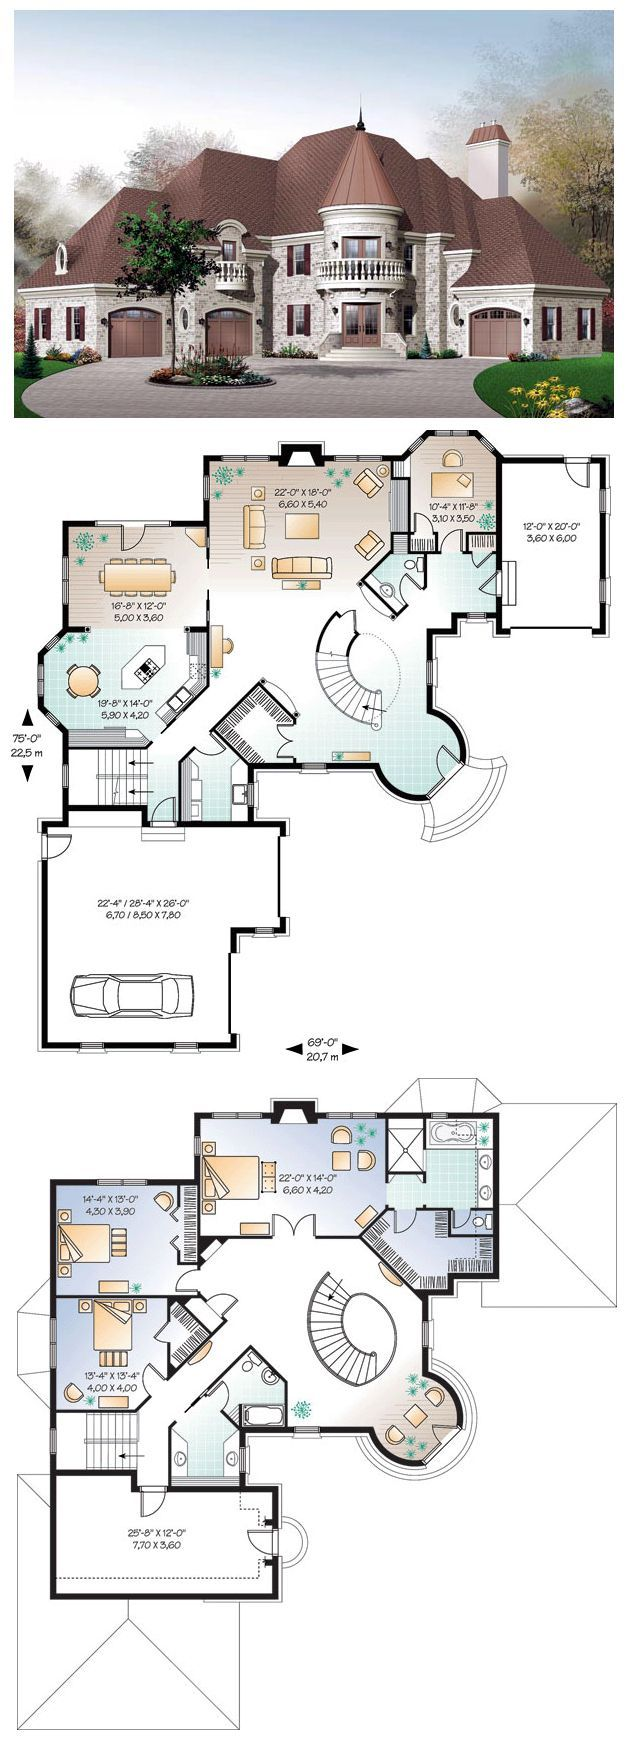 Luxury Houseplan 65361 This Dreamy Castle Inspired House Plan Features A Dramatic Turret Style Entry Planos De Casas Disenos De Casas Diseno De Casa Planos